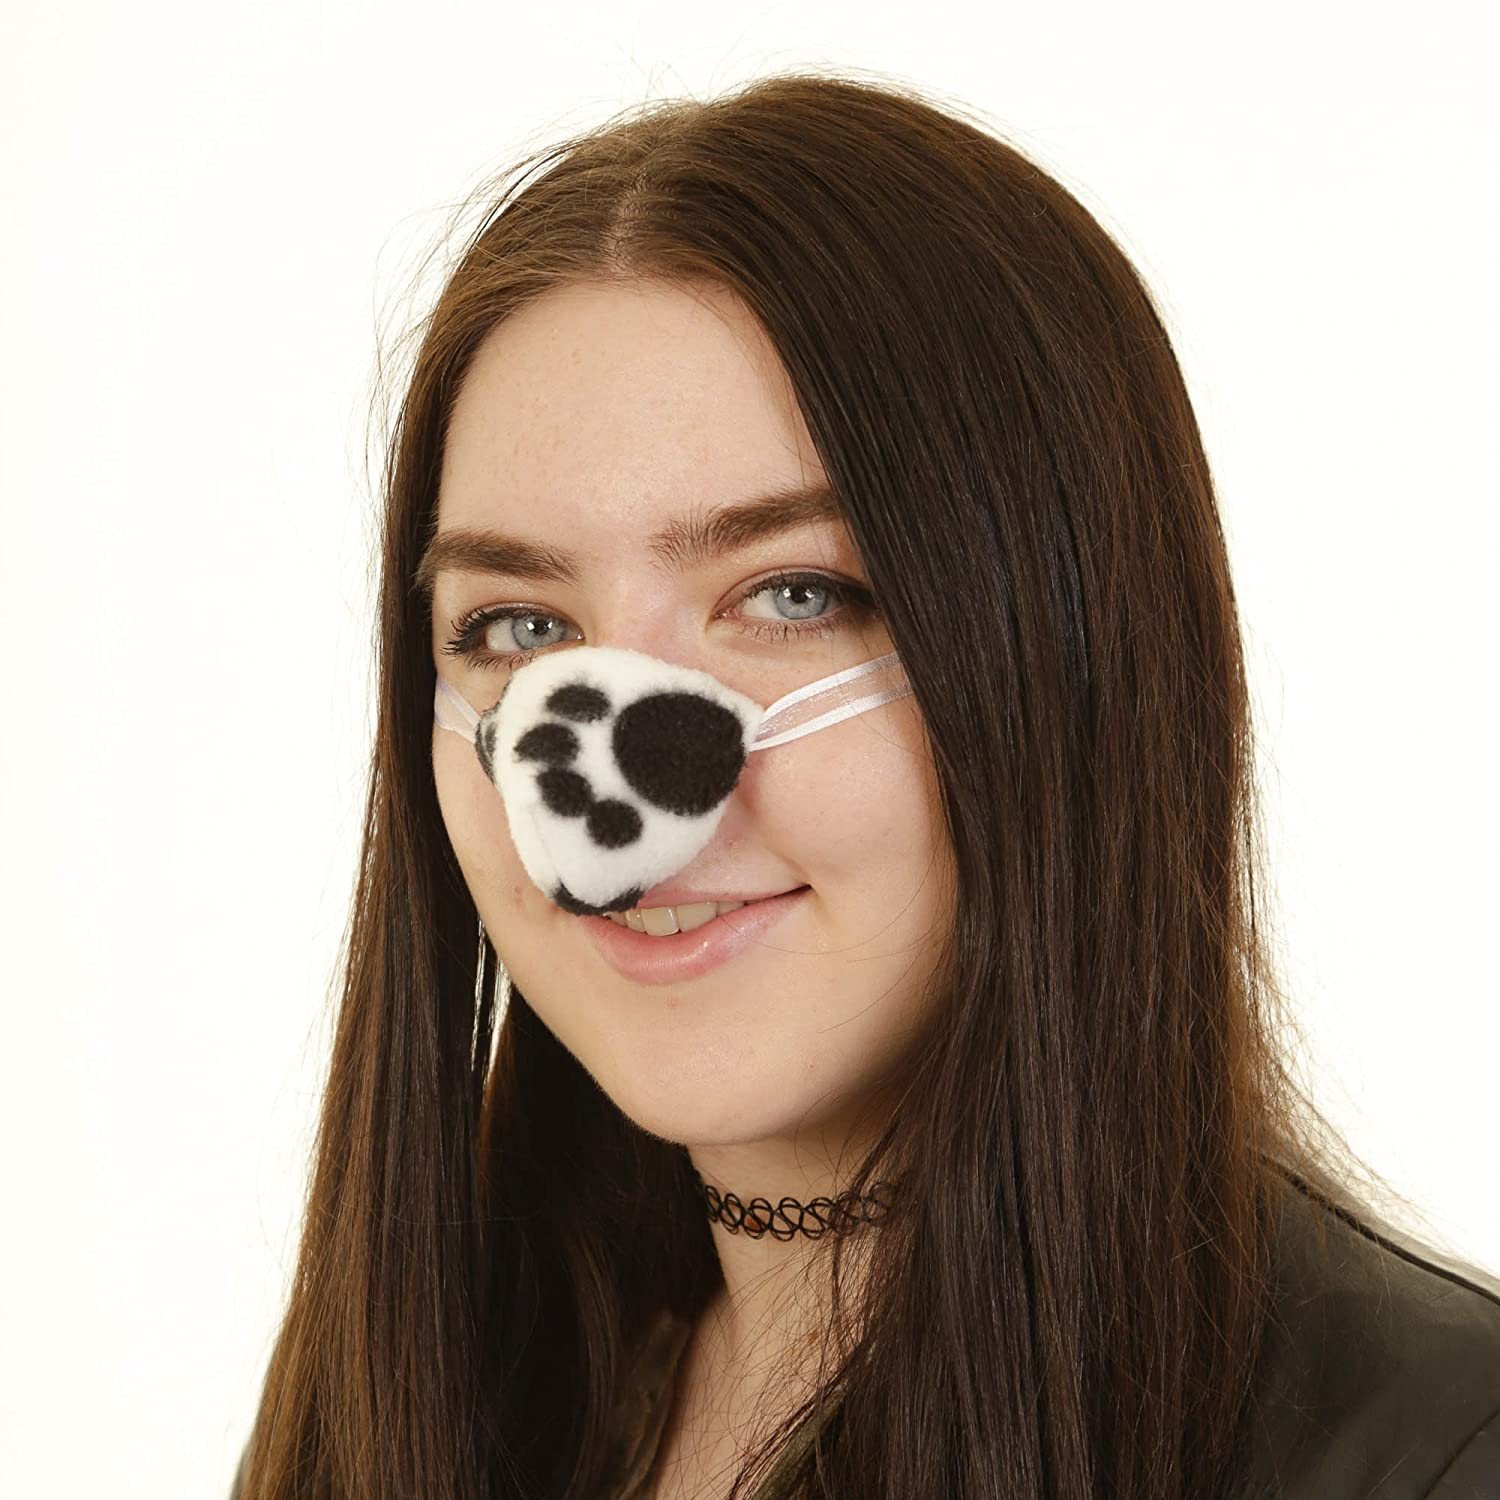 Paw Print Fleece Nose Warmer The Nose Warmer Company